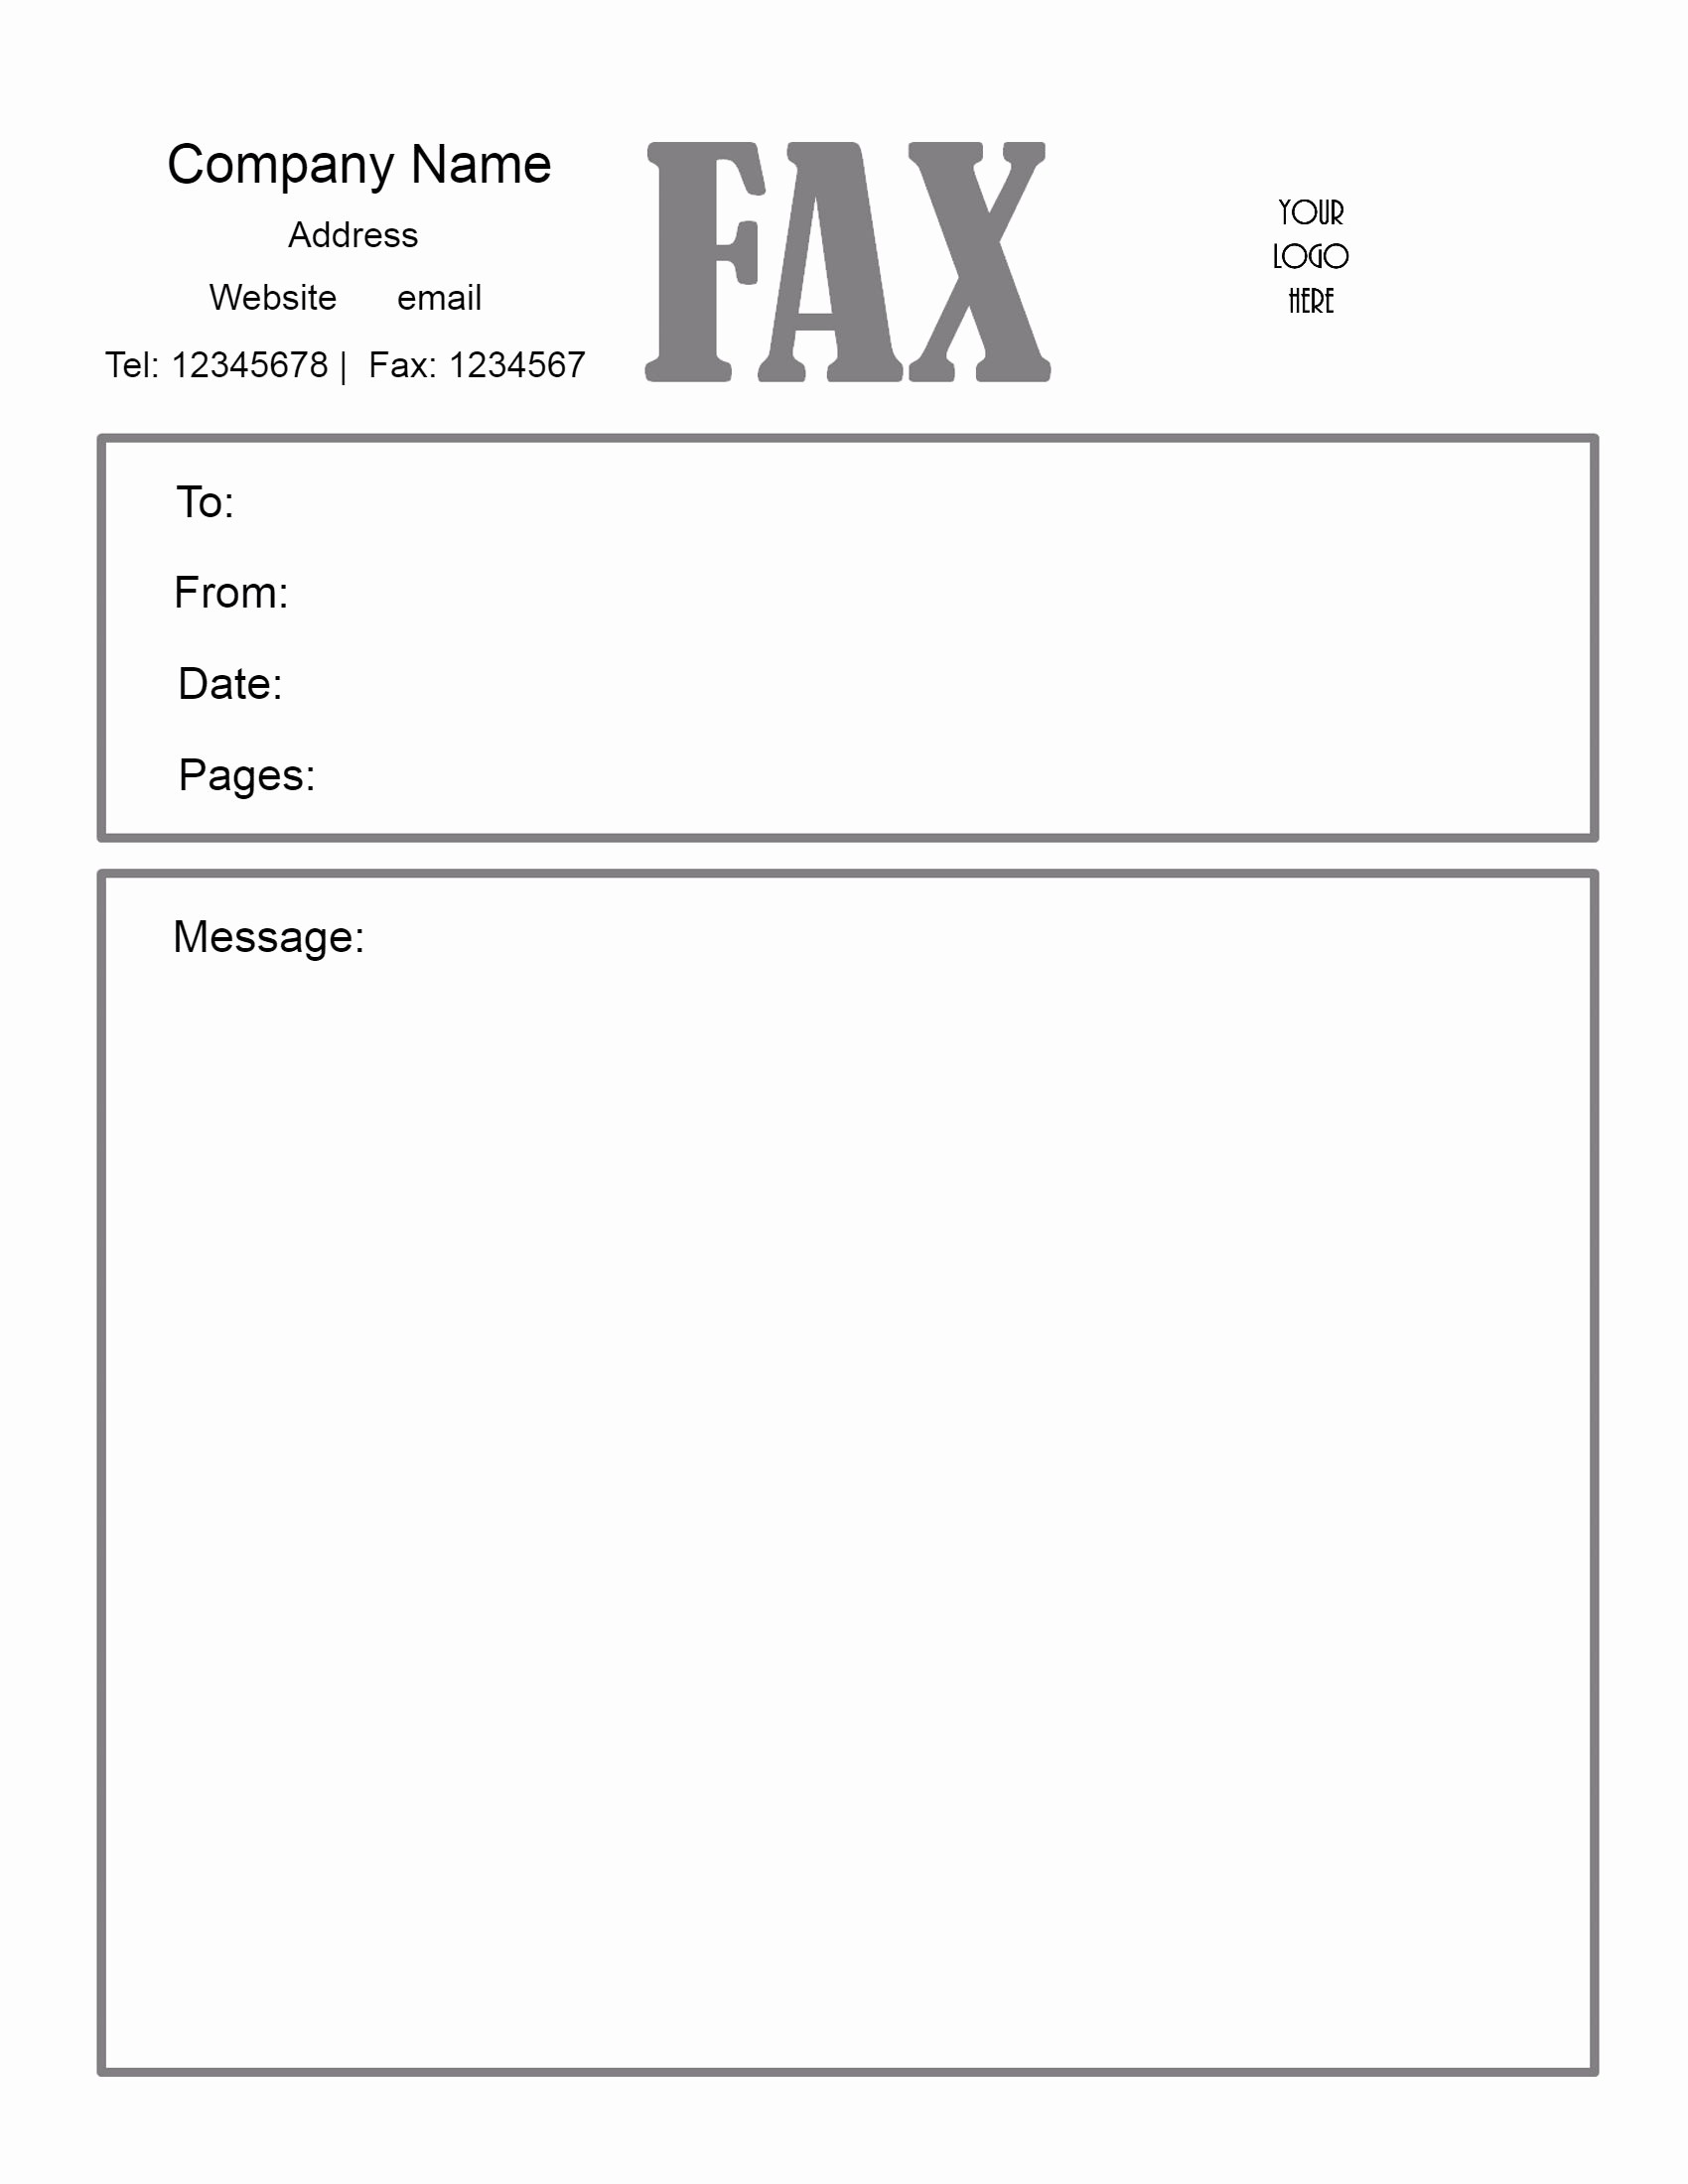 Cover Sheet for A Fax Fresh Free Fax Cover Sheet Template